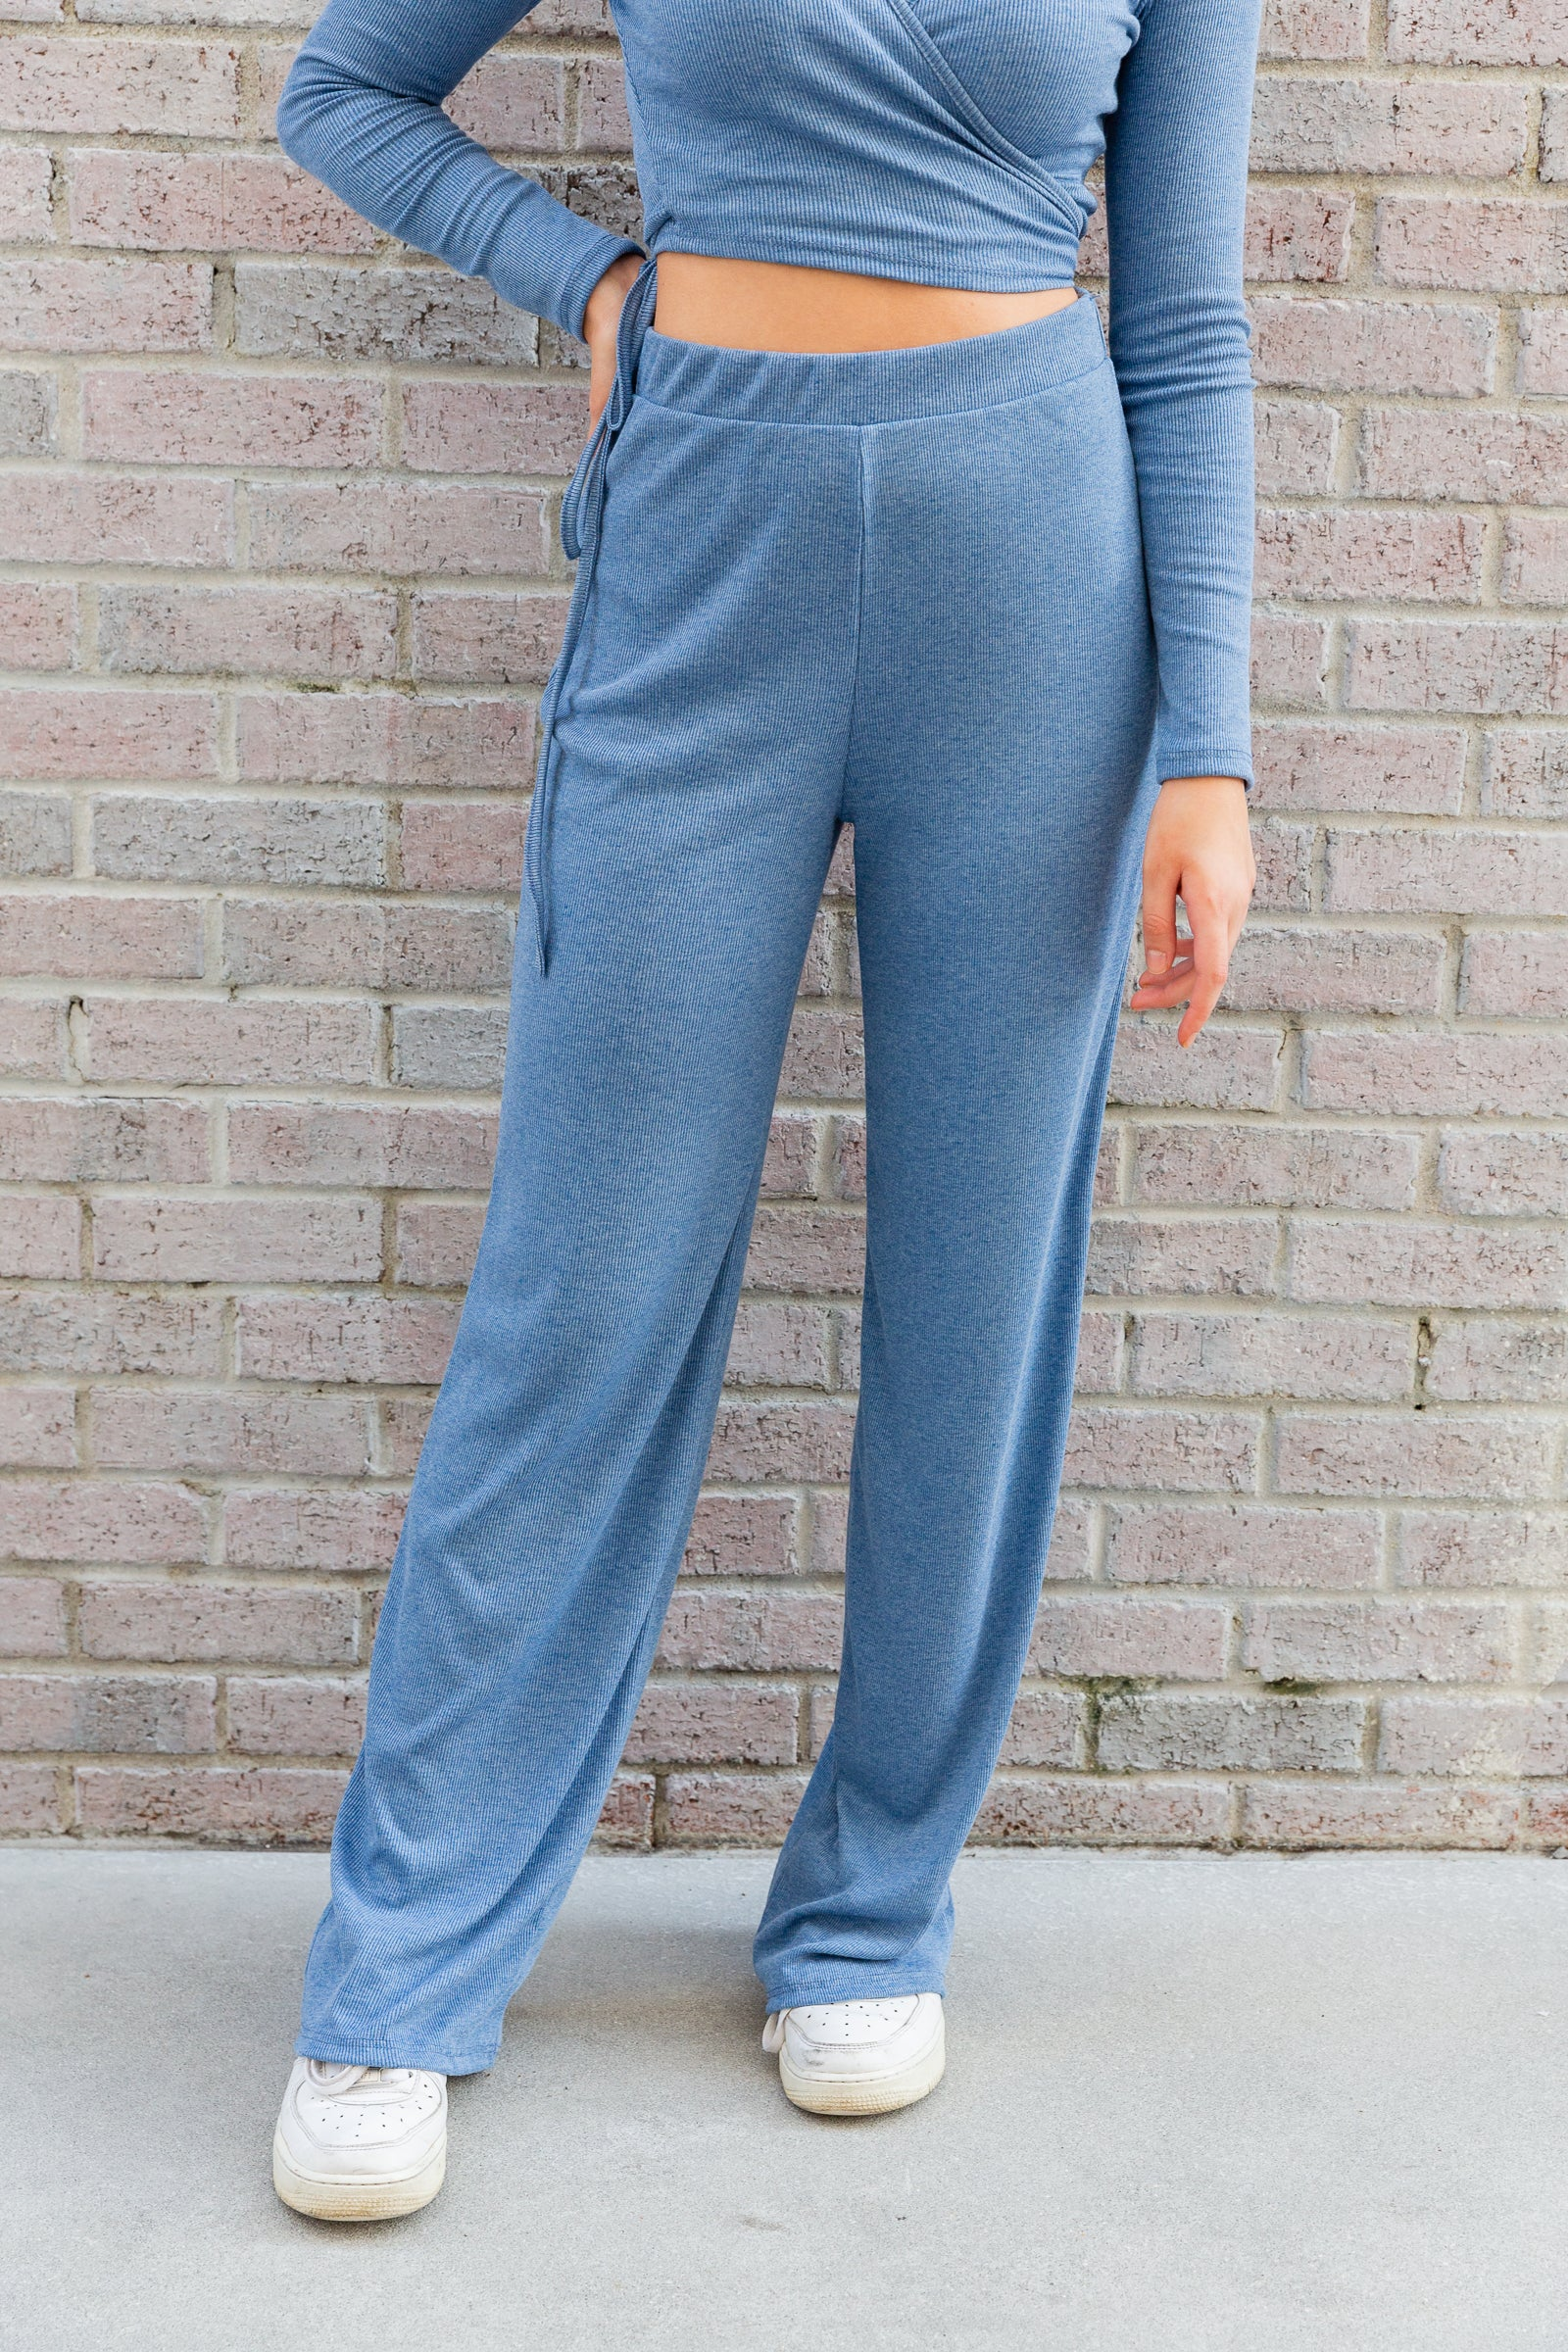 These lounge pants are ribbed with an elastic waistband that is high-fitted and hip-hugging then flows down into gently flared pant legs.